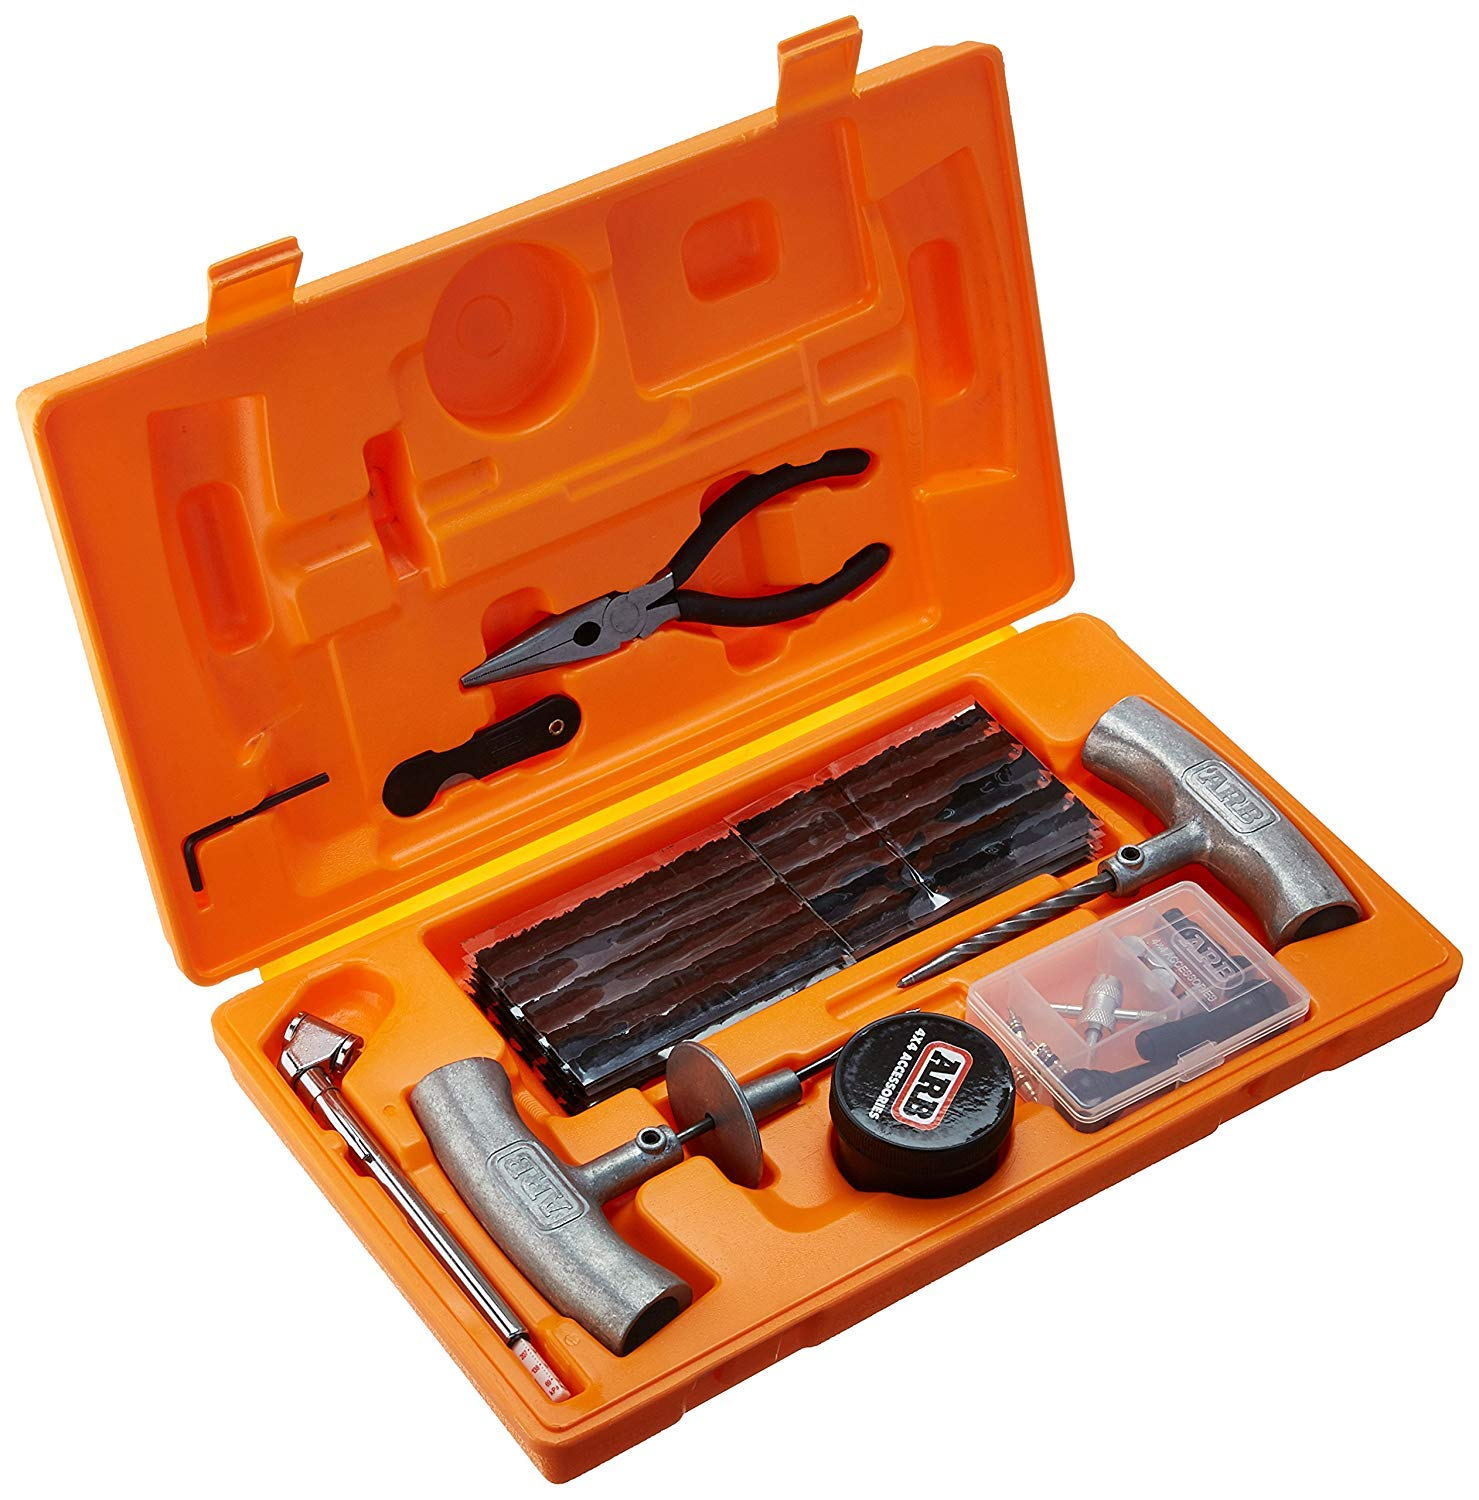 Tire Repair Kit >> Arb 10000010 Orange Speedy Seal Tire Repair Kit